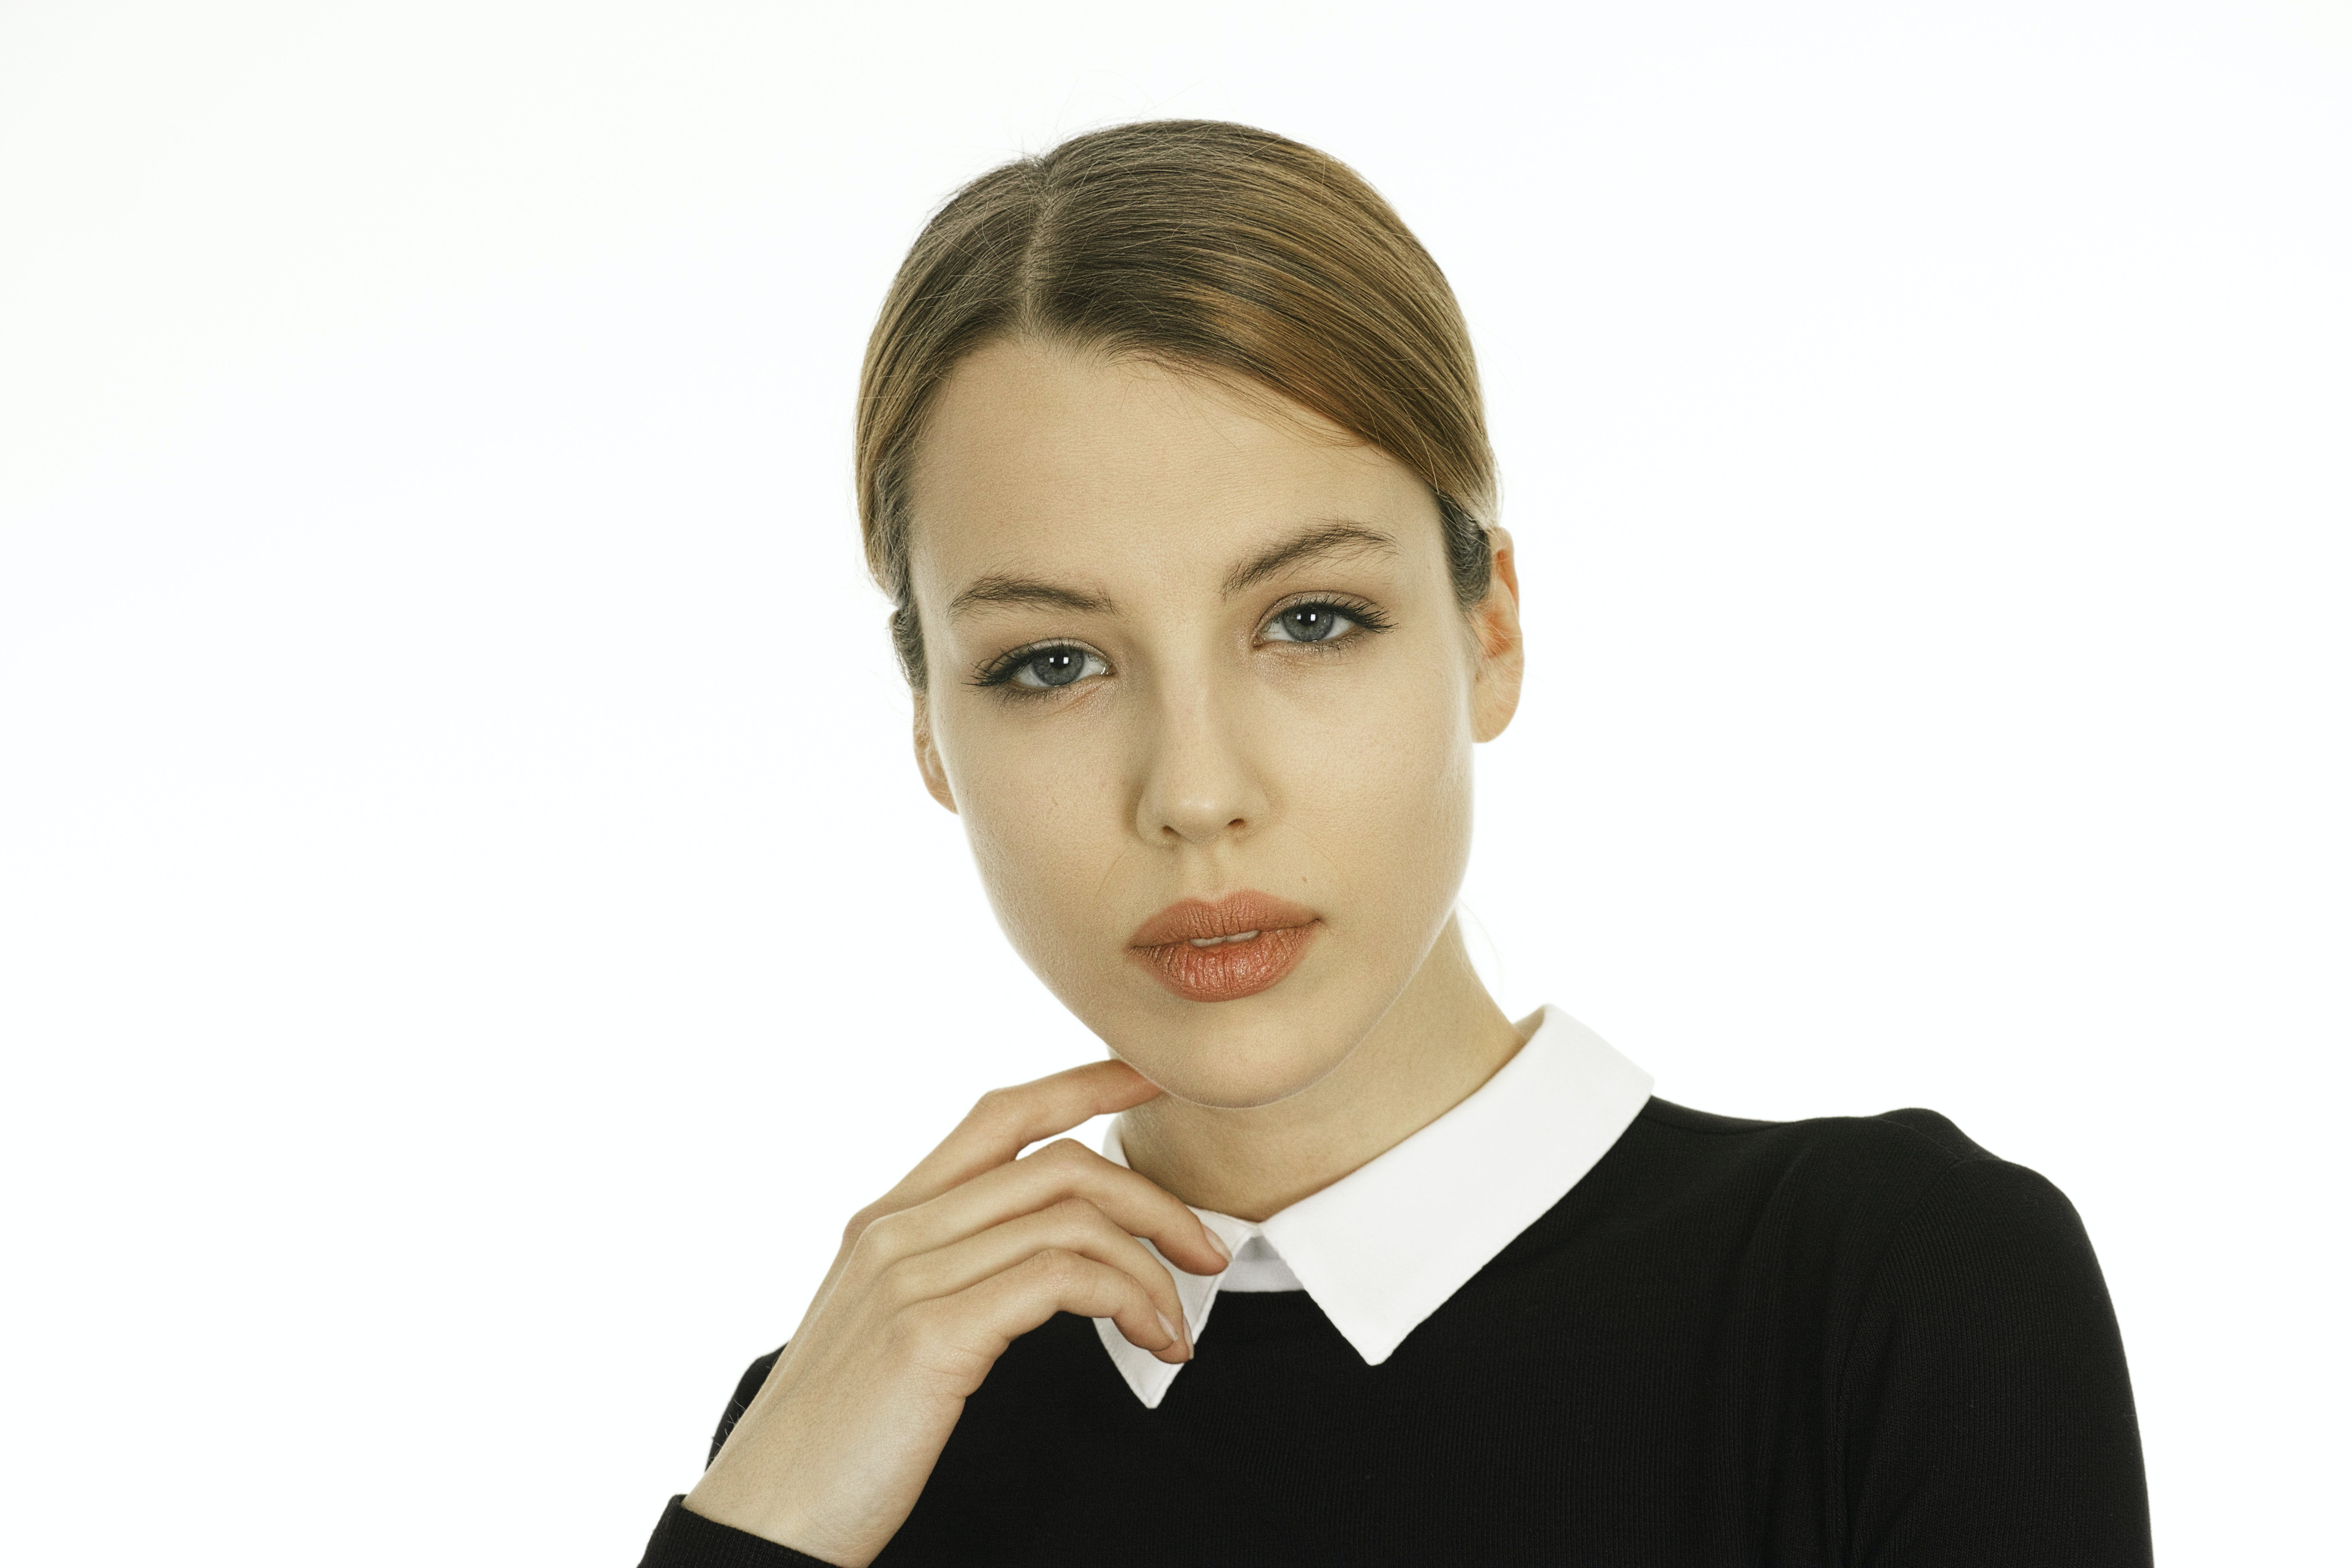 Woman Wearing White and Black Collared Shirt